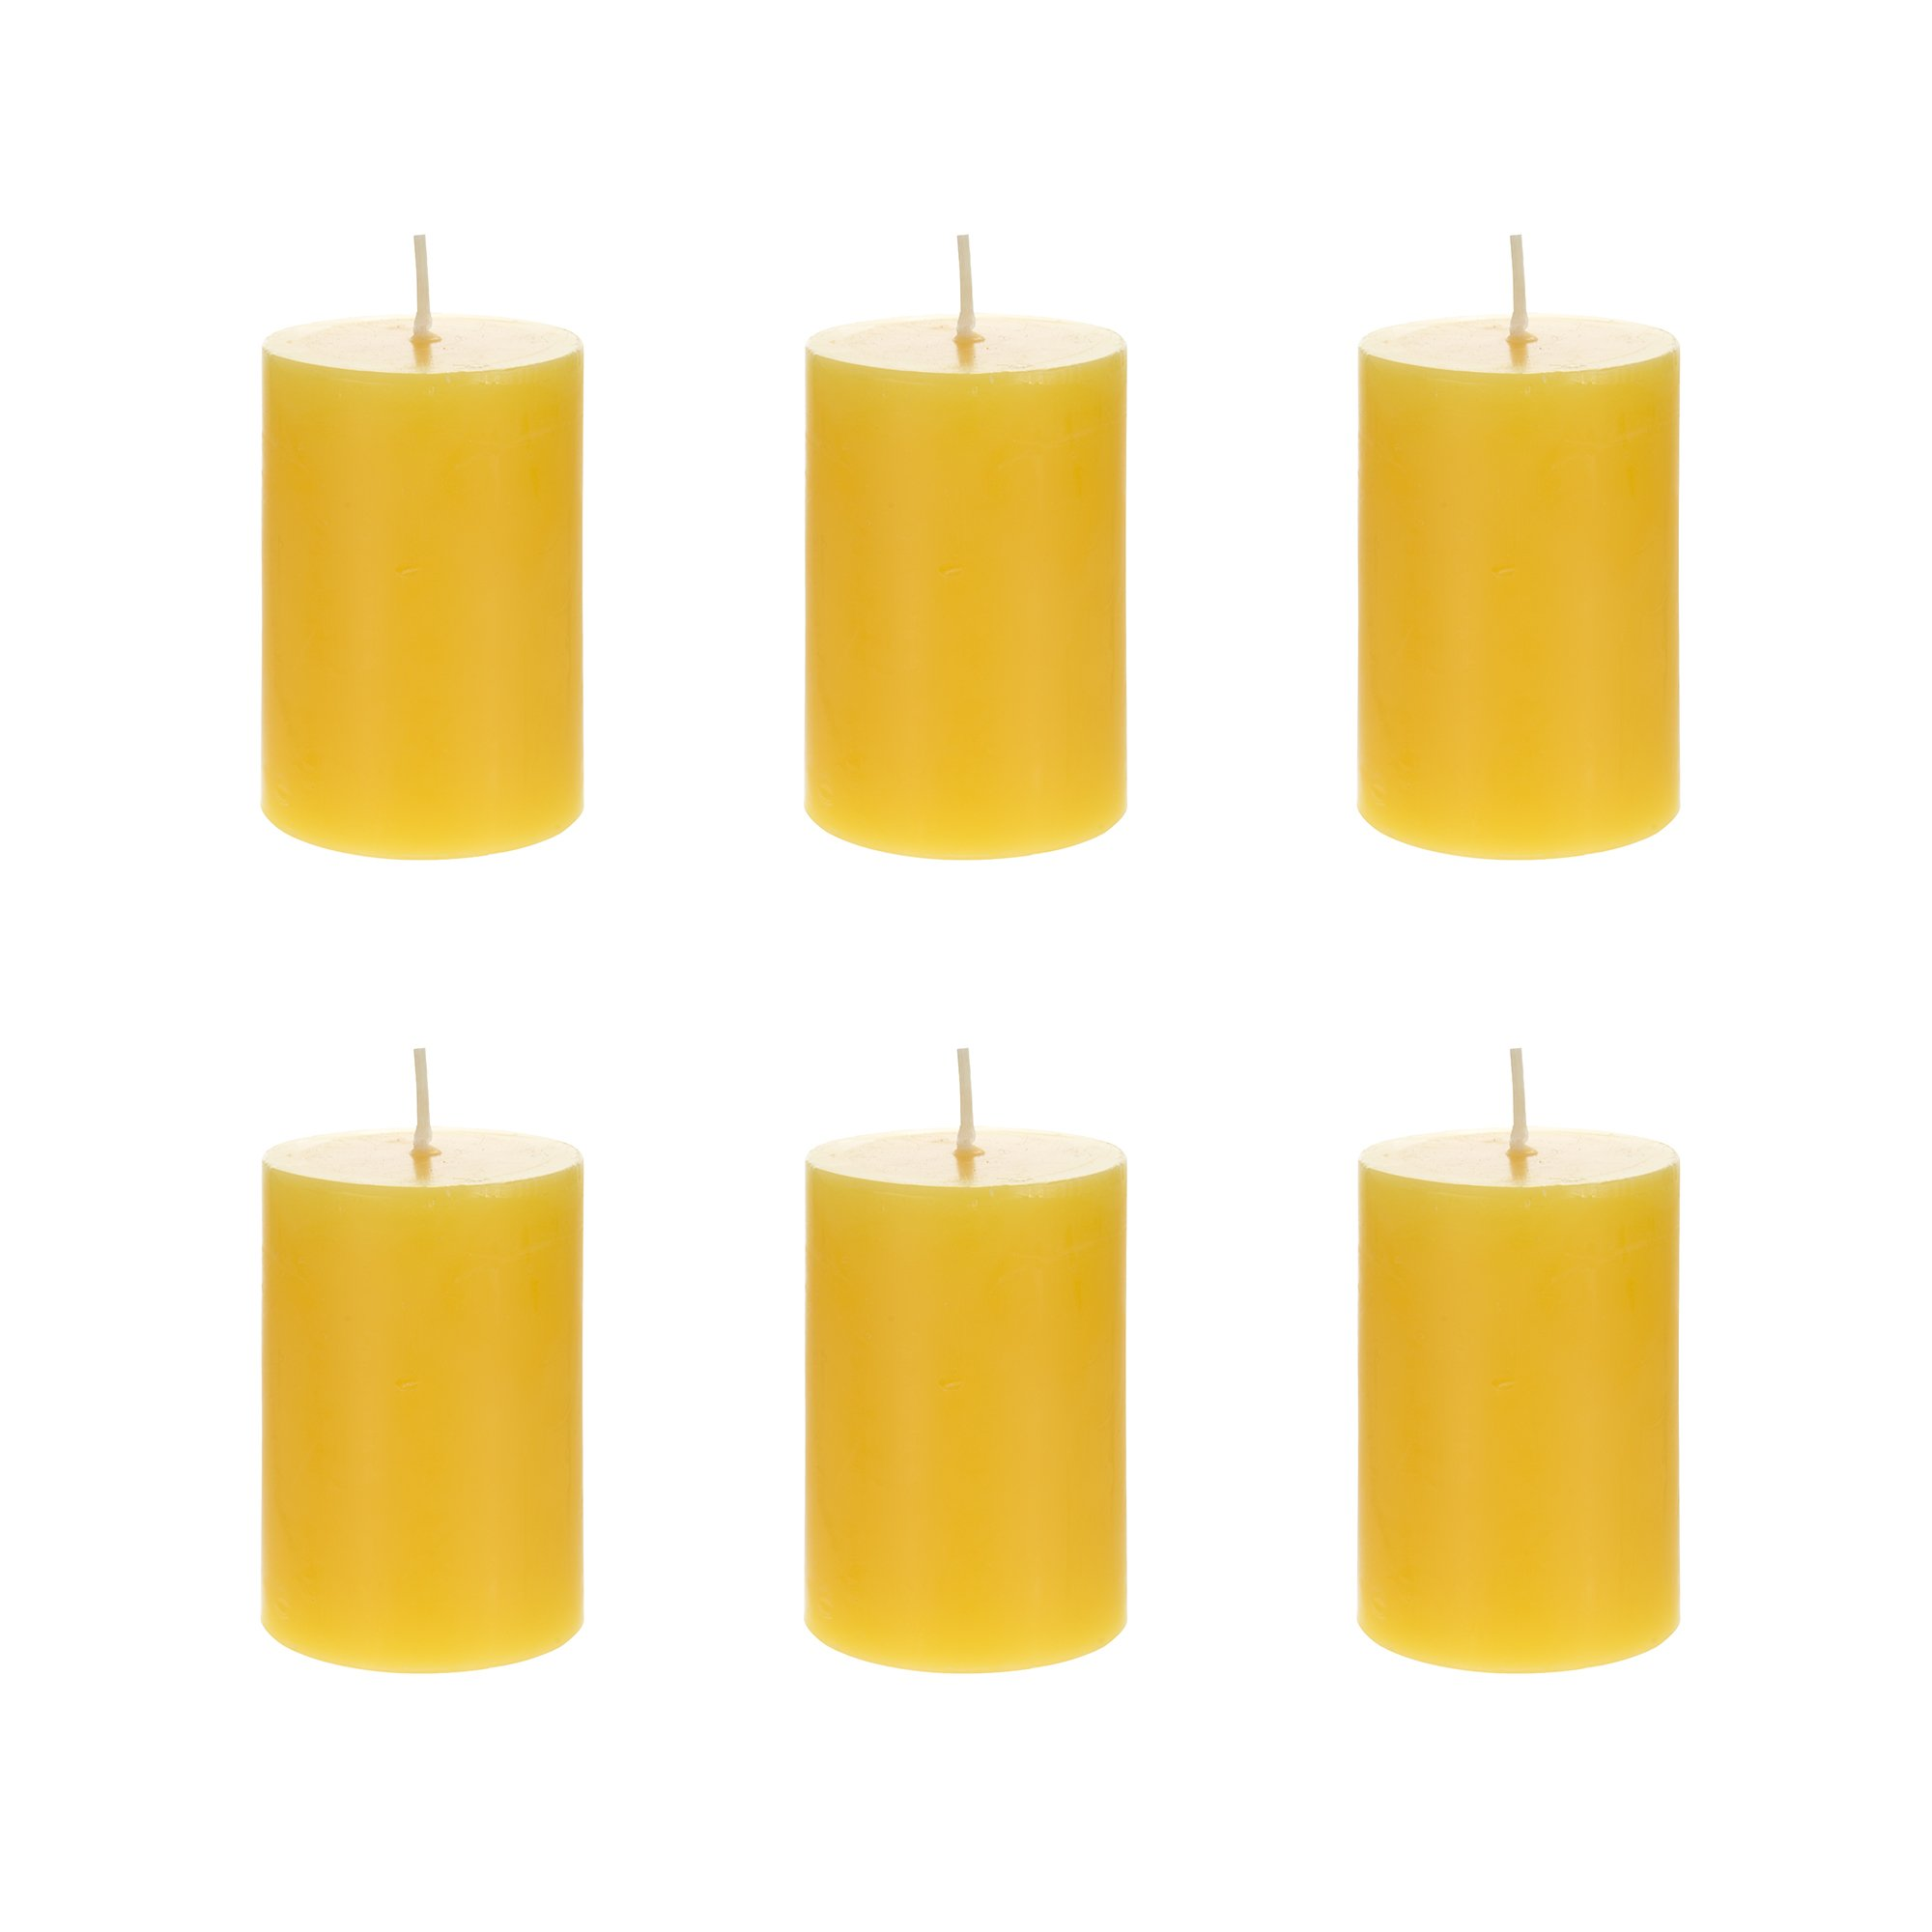 Mega Candles 6 pcs Citronella Round Pillar Candle | Hand Poured Paraffin Wax Candles 2'' x 3'' | Bug Repellent Candles For Indoor And Outdoor Use | Everyday Candles For Mosquitoes And Insects by Mega Candles